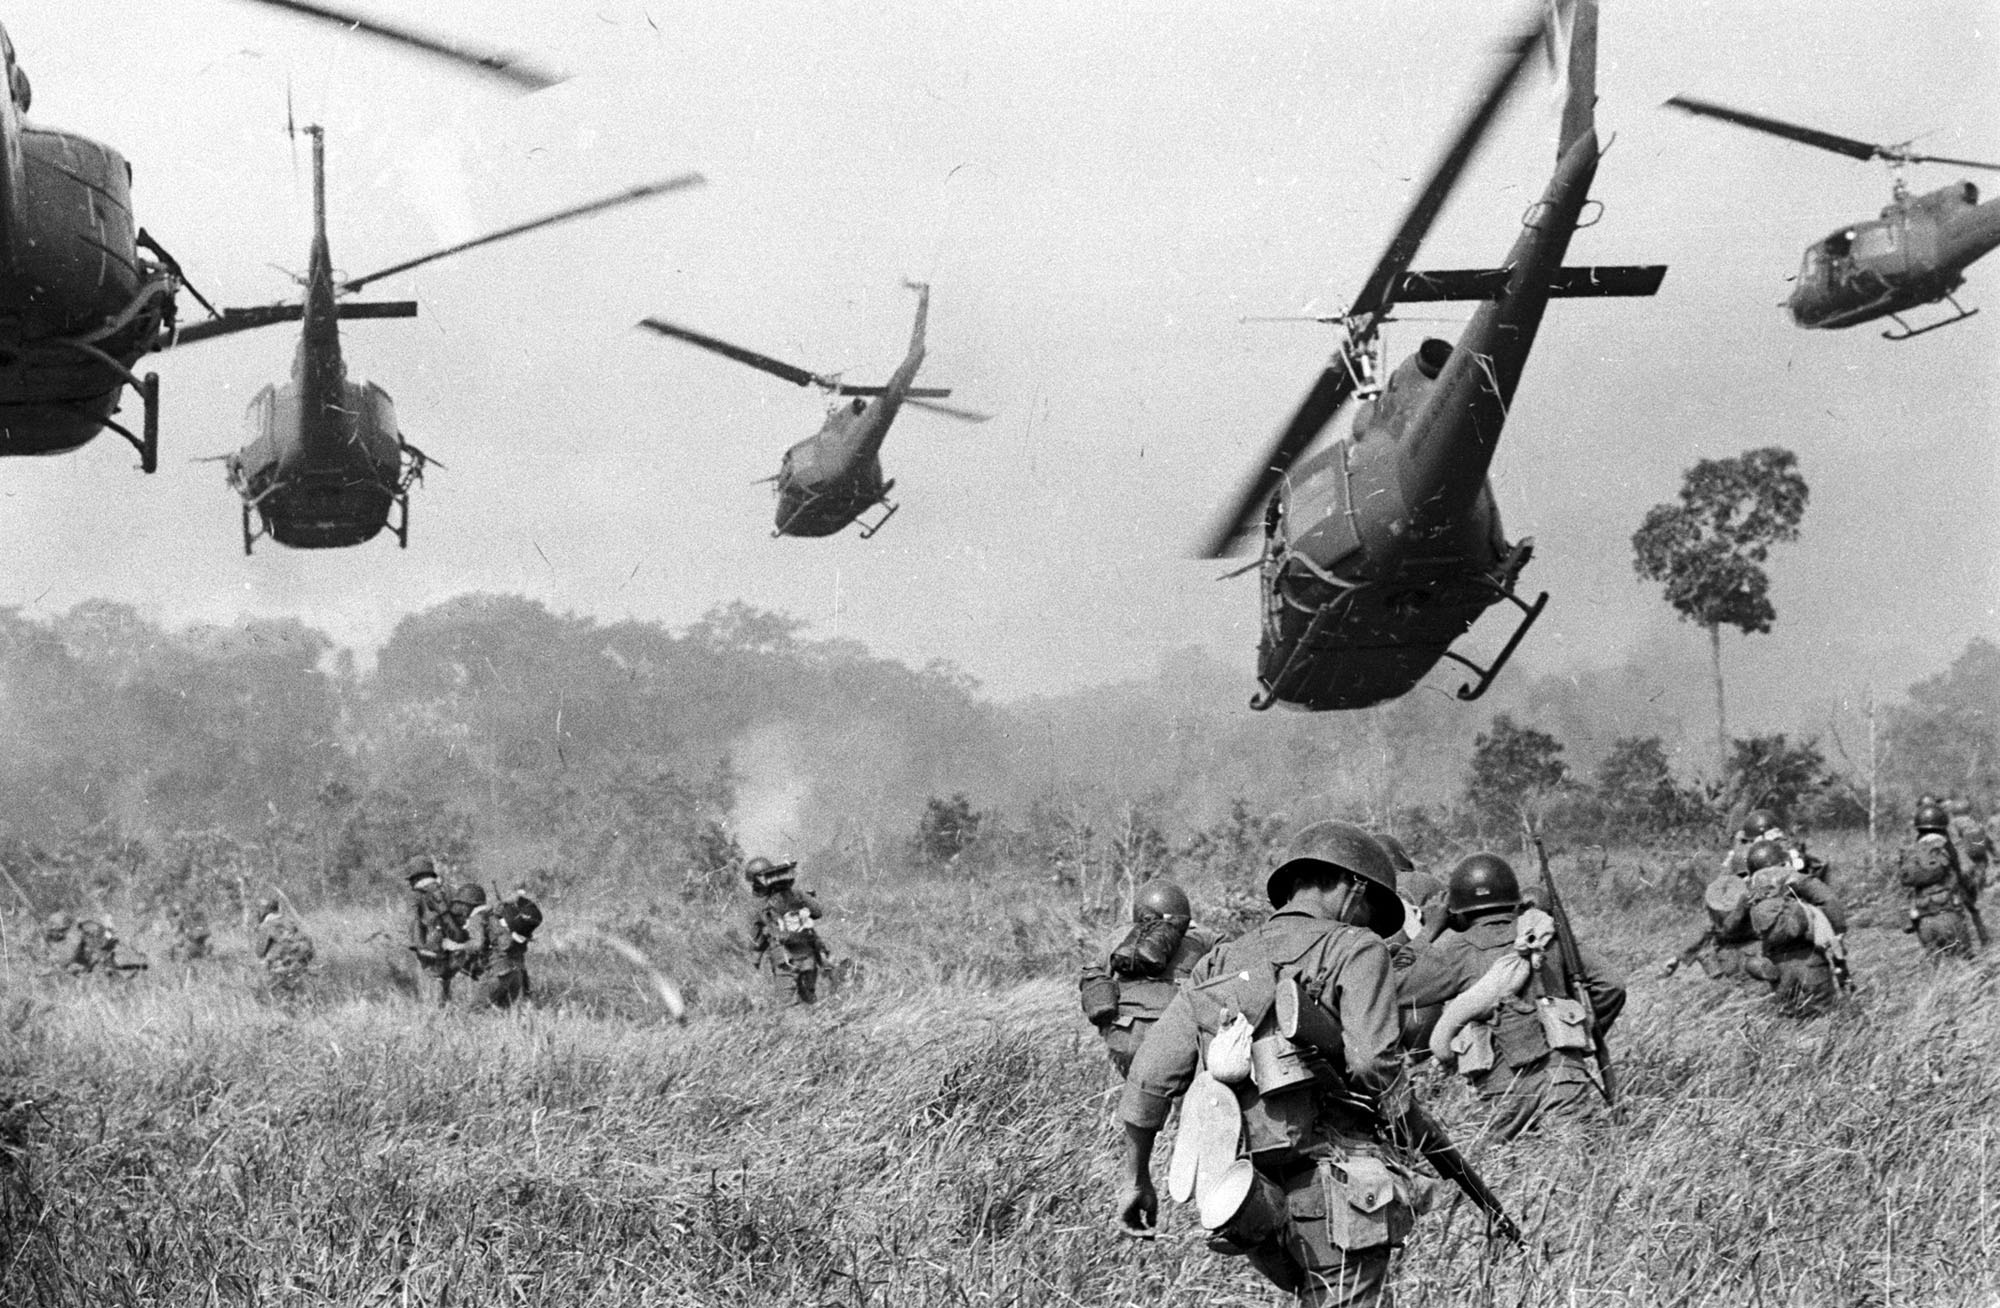 The Vietnam War, Part I: Early Years and Escalation - The Atlantic